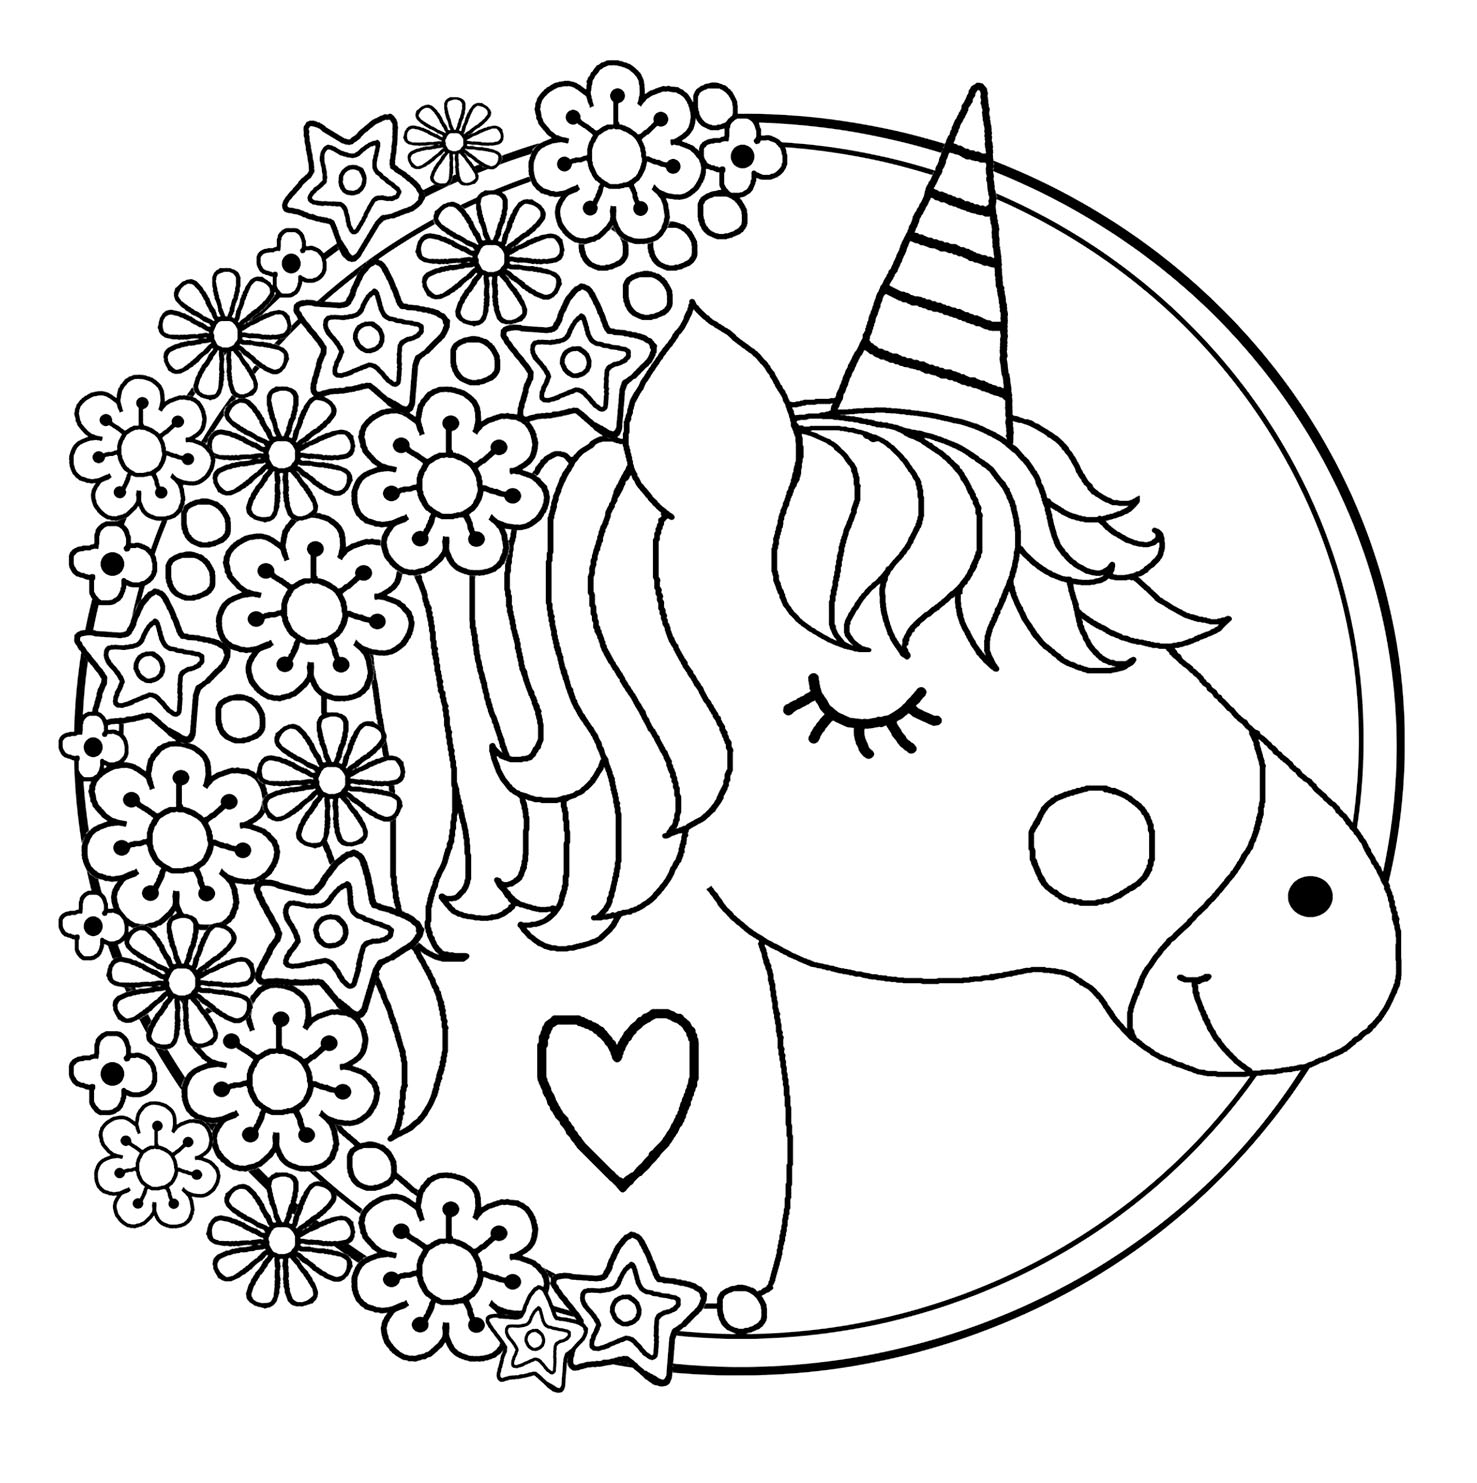 unicorn pictures for coloring downloadable unicorn colouring page michael o39mara books for unicorn coloring pictures